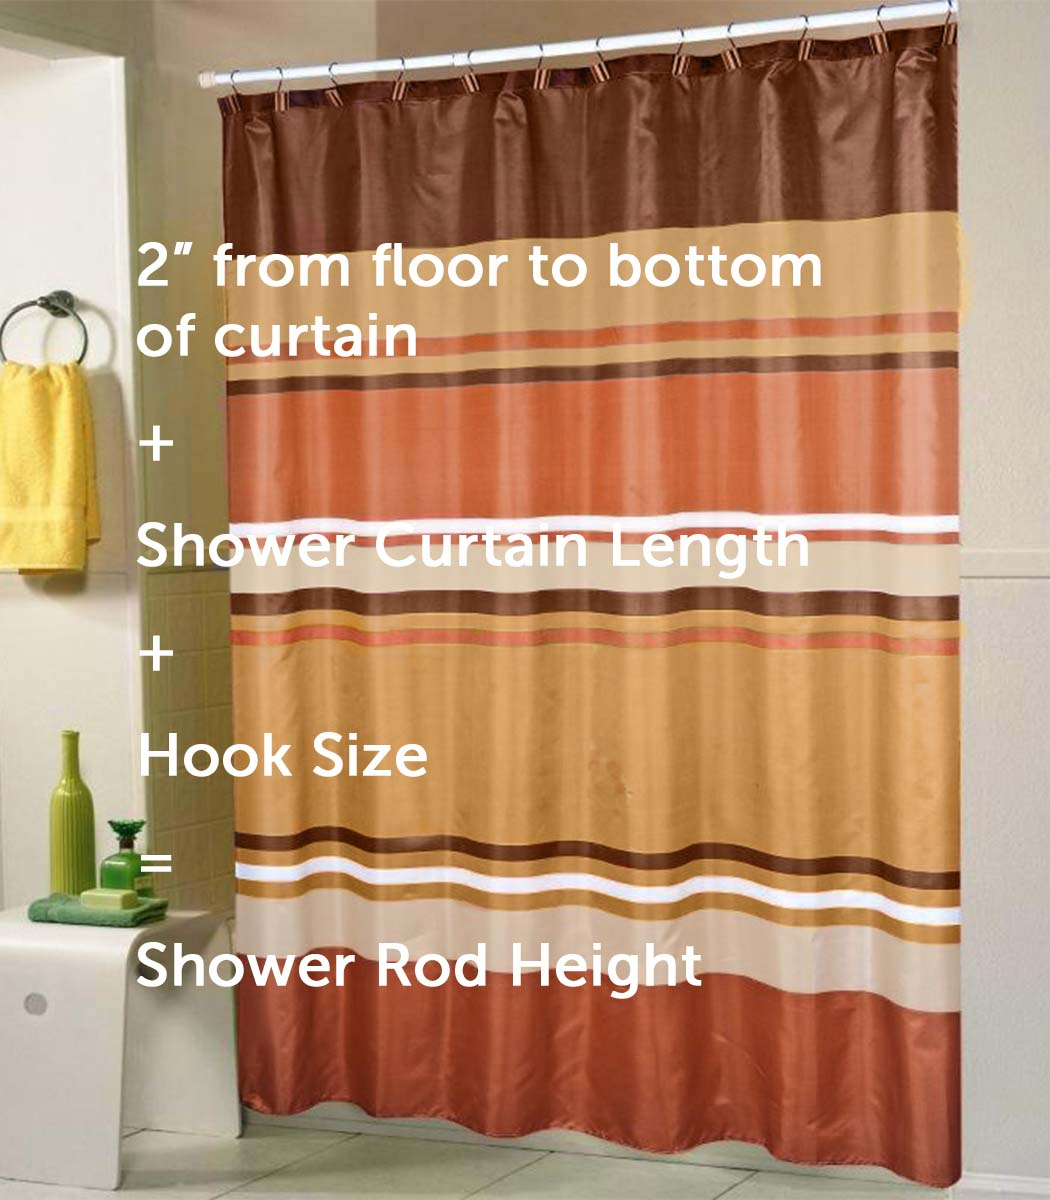 With A Standard Shower Curtain Height At 70 Or 72 Inches Adding Least Three Will Give You Good Indication About The Ideal Rod